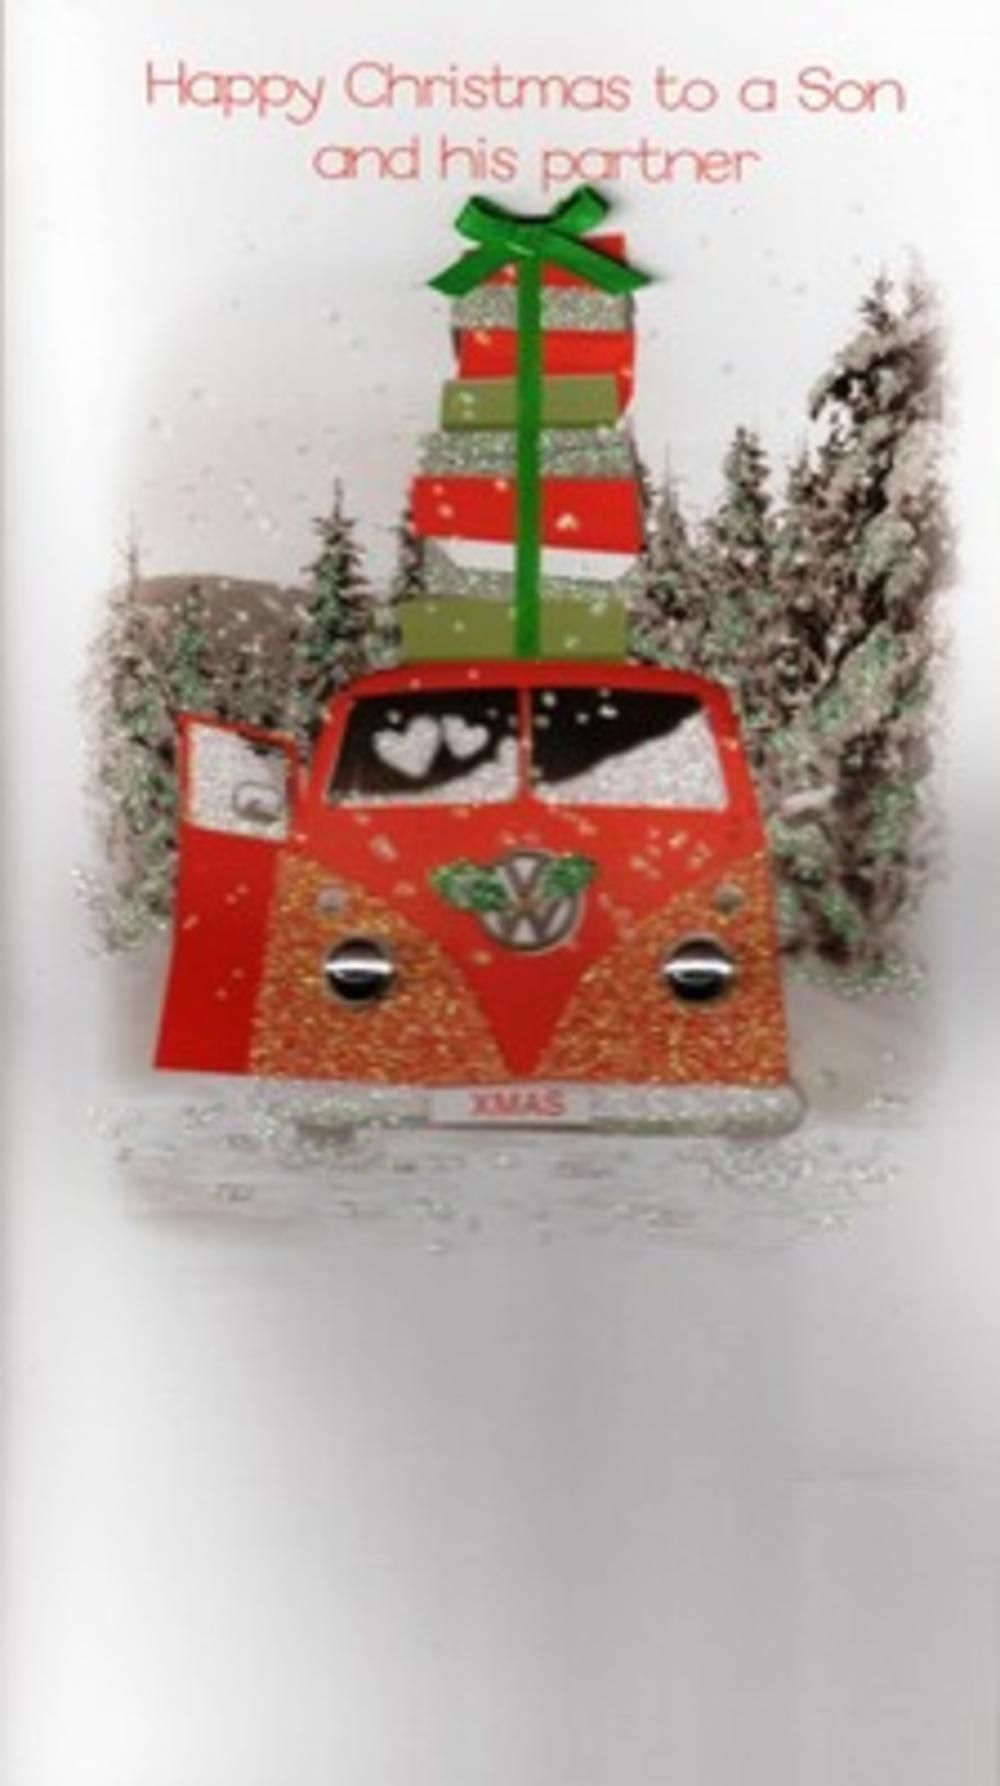 Son & His Partner Luxury Vw 3D Glitter Xmas Christmas Cards Photo Finished Card